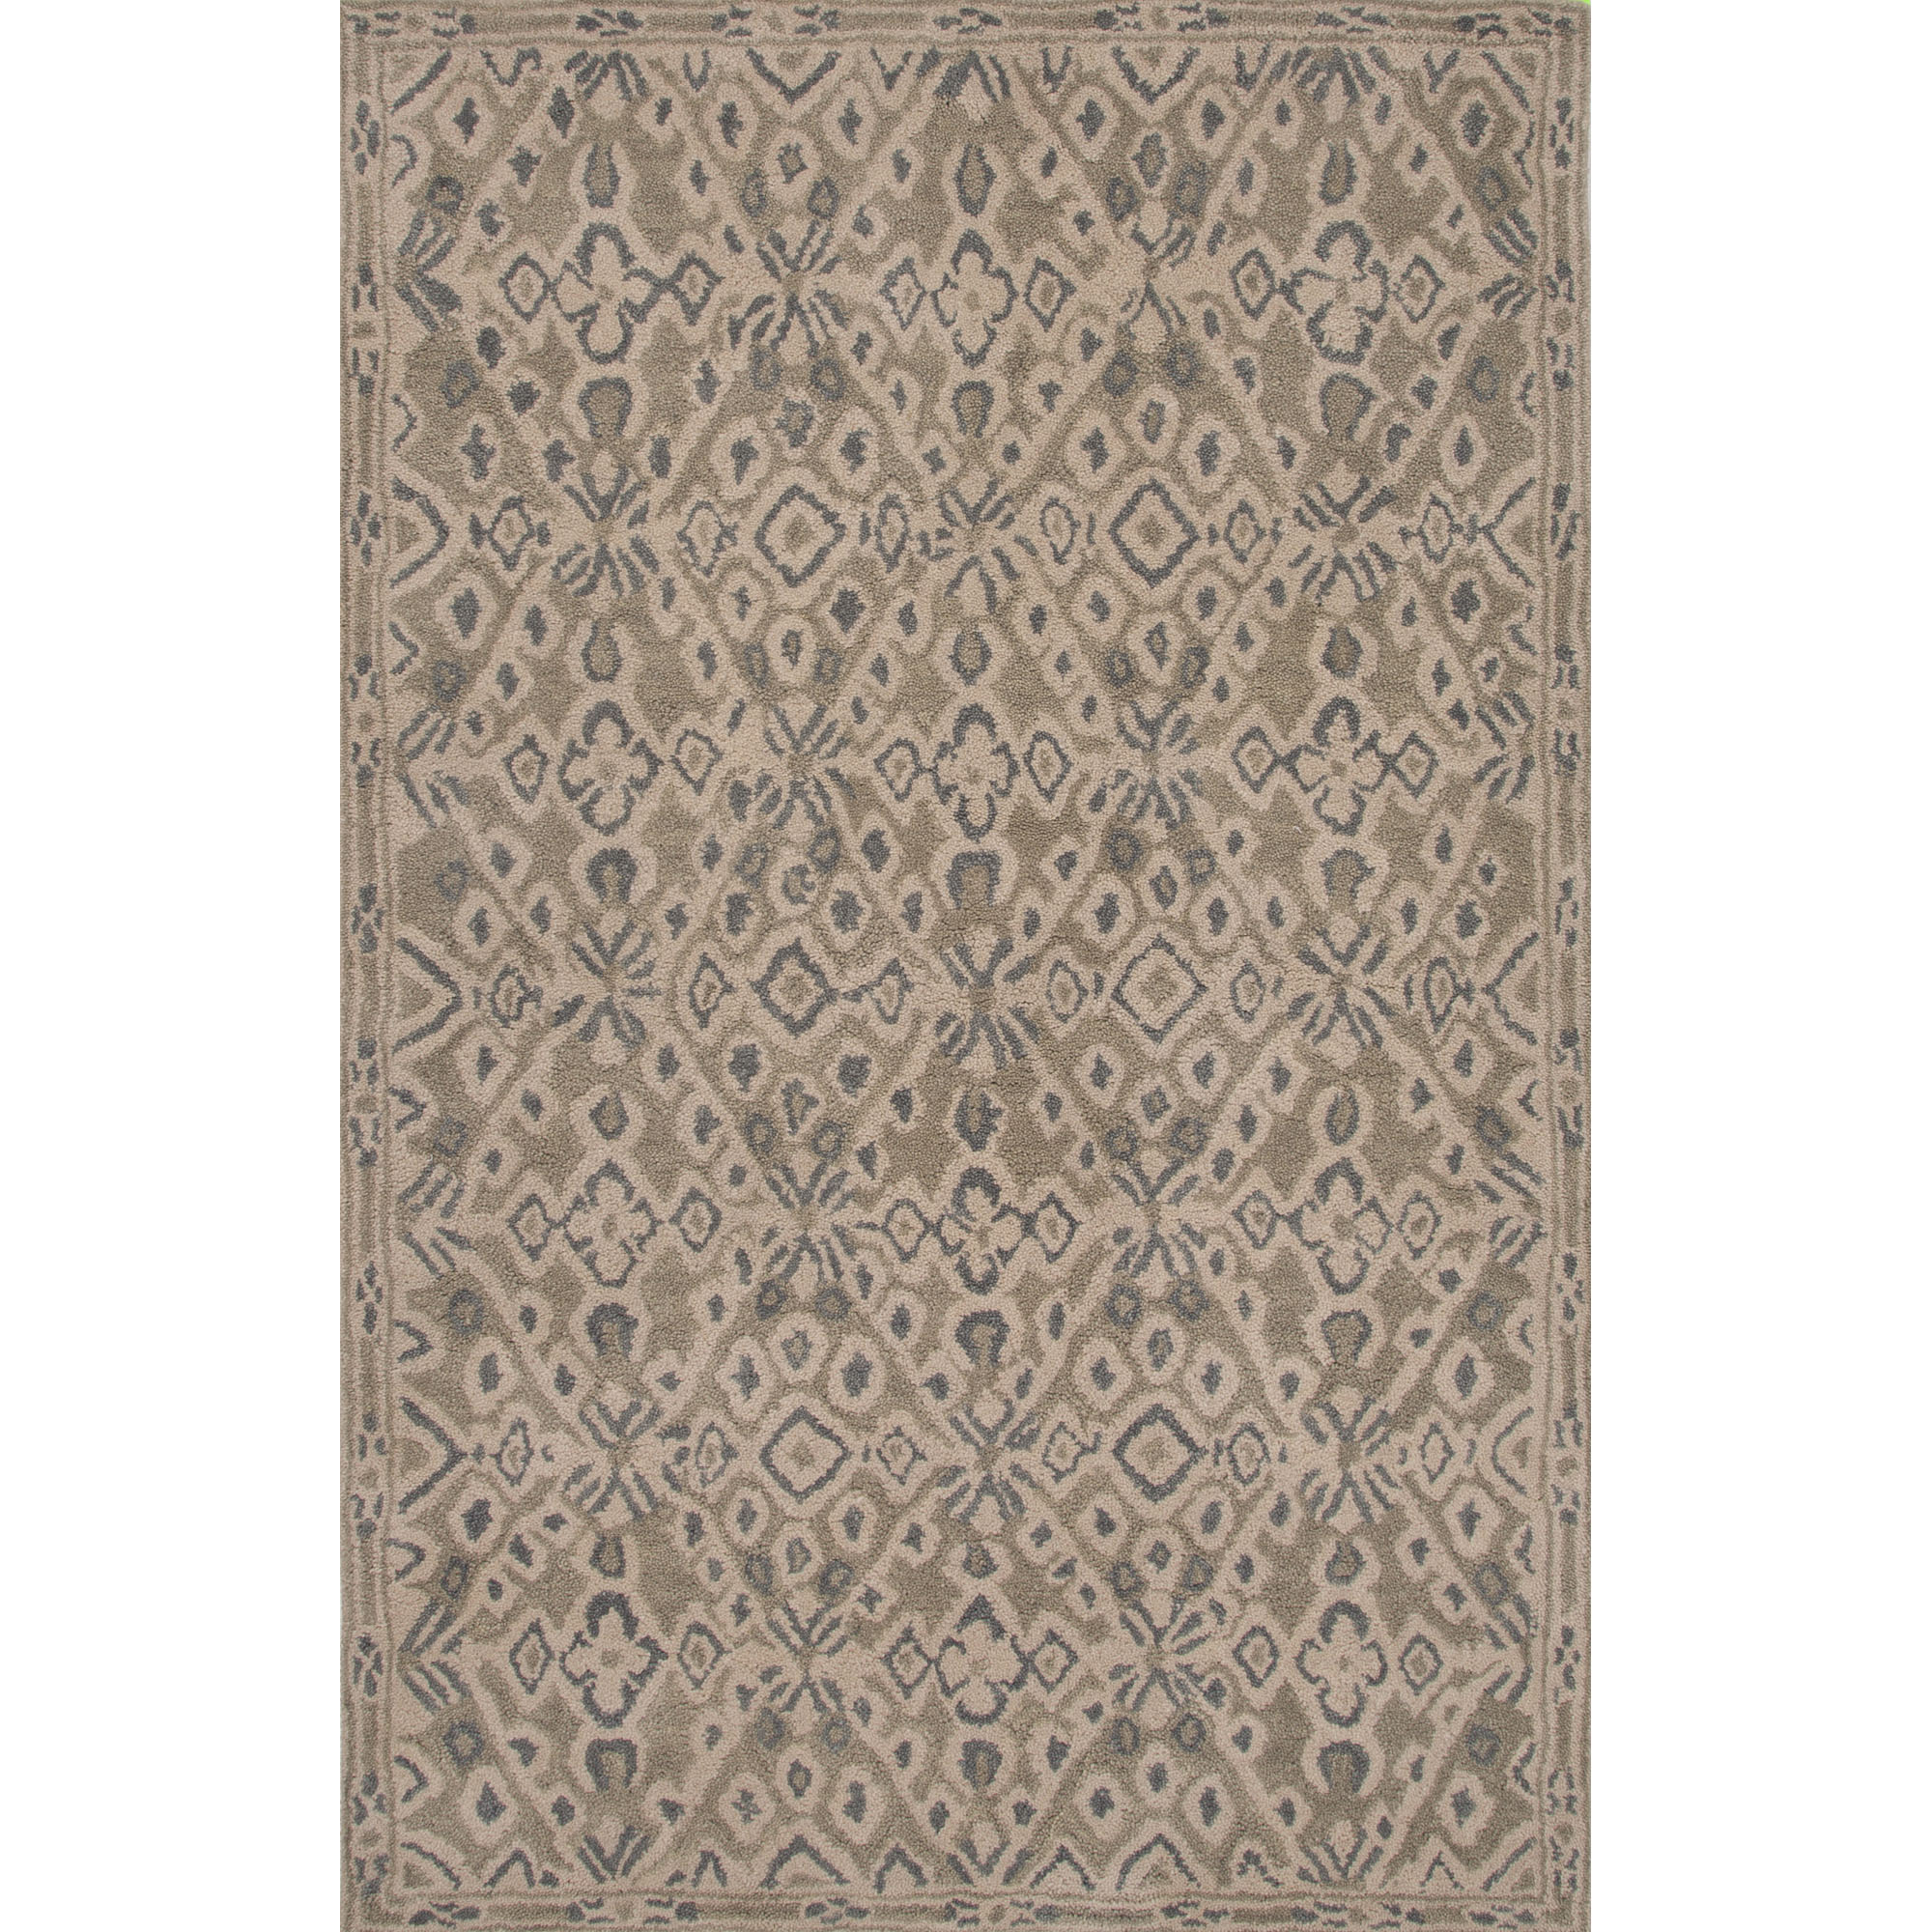 JAIPUR Rugs Traditions Made Modern Tufted 2 x 3 Rug - Item Number: RUG122194